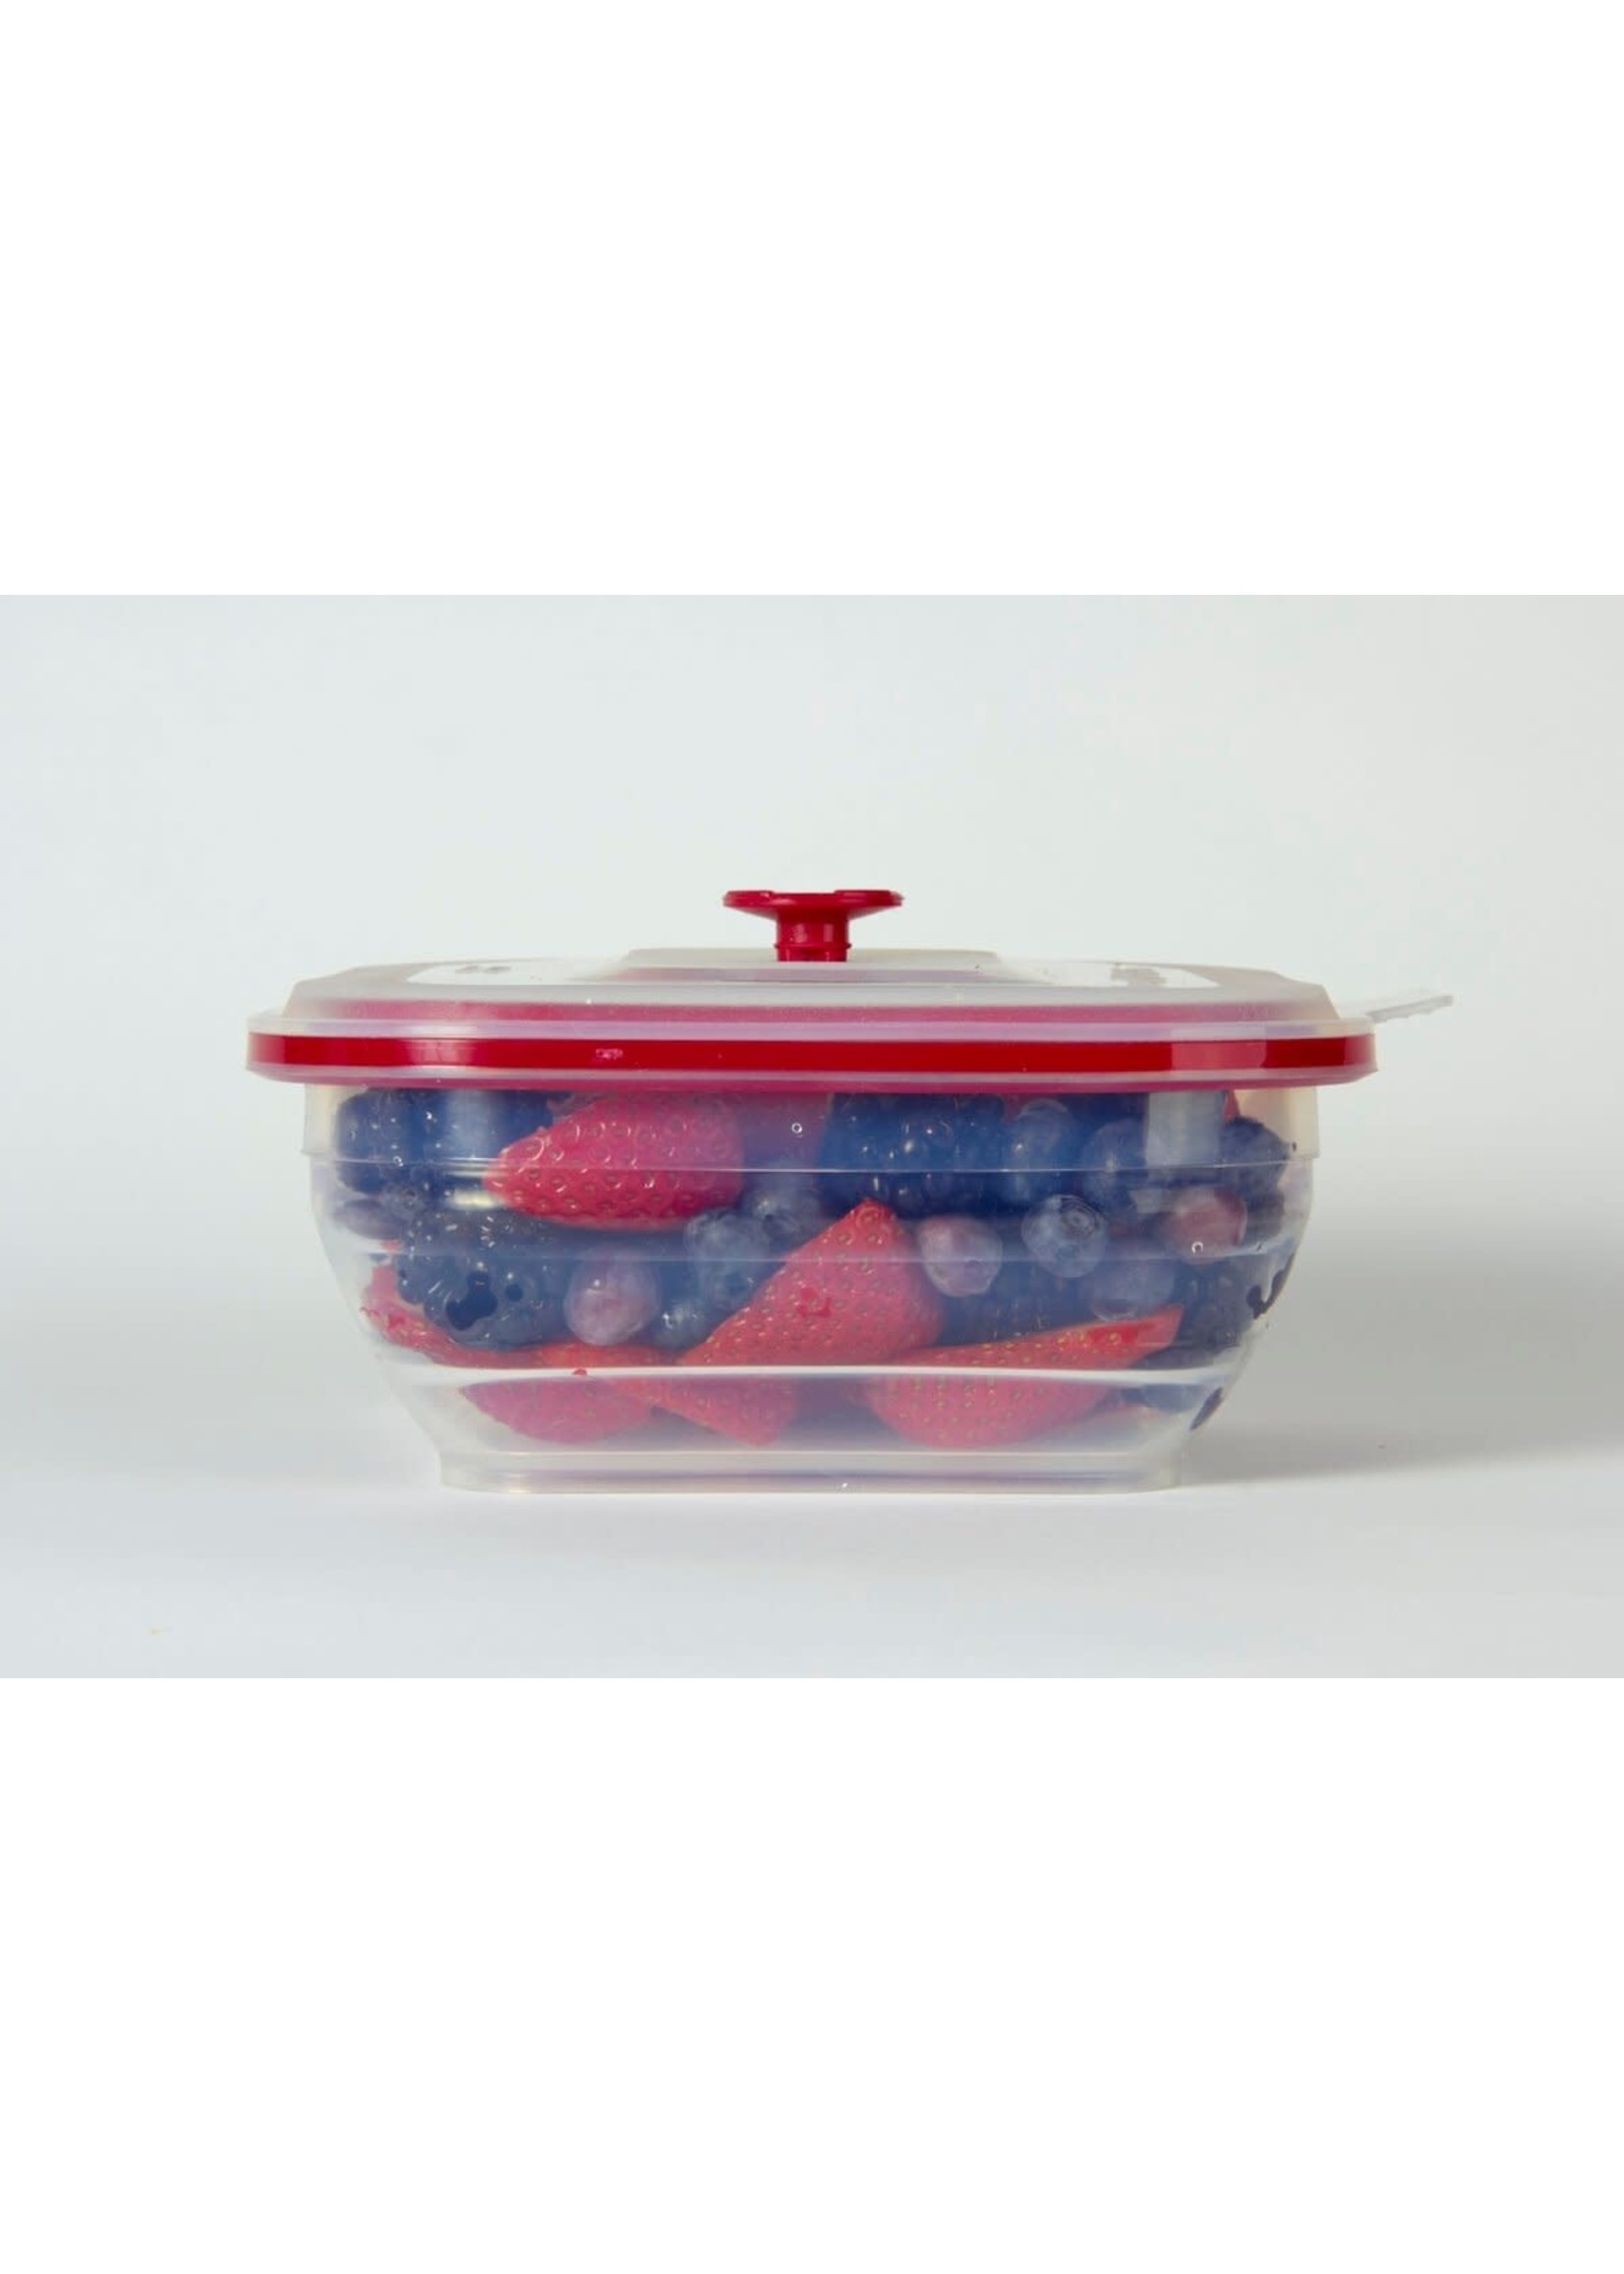 Collapse-It Square Collapse-It - 4 cup - Berry